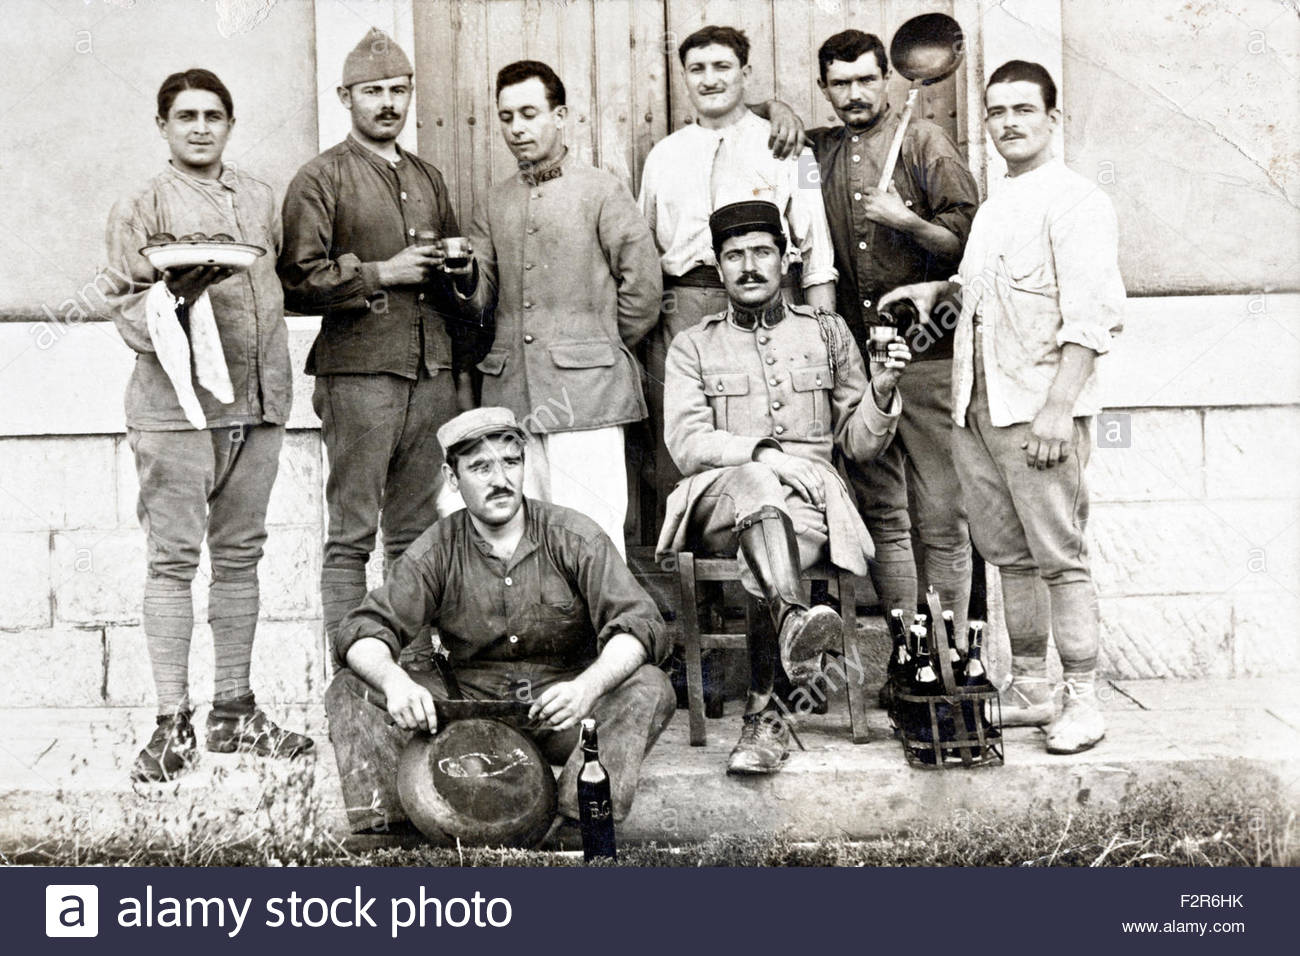 group portrait French soldiers 1910s - Stock Image